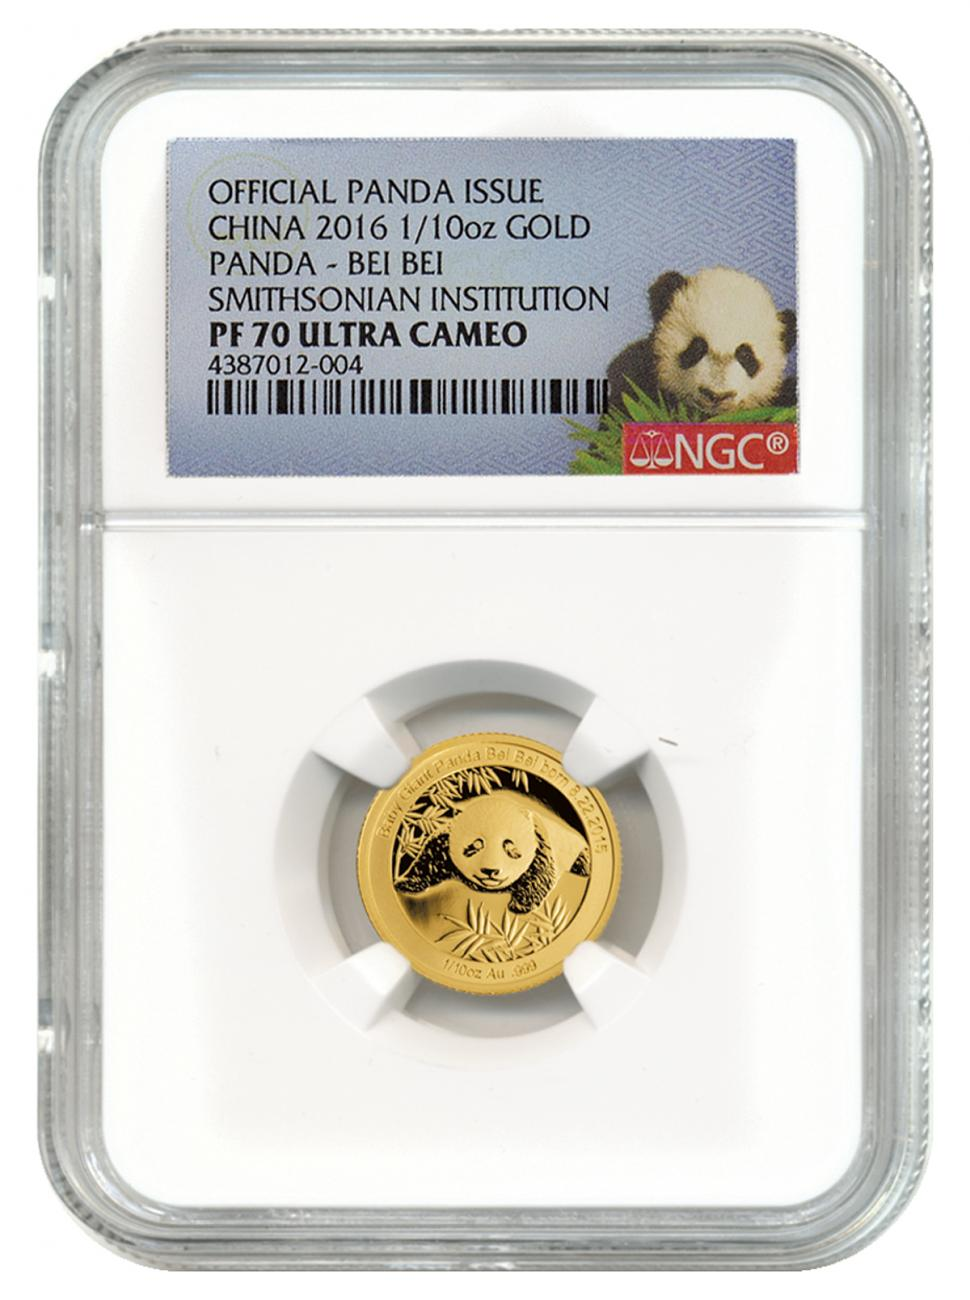 2016 China Bei Bei Smithsonian Institution Official Mint Medal 1/10 oz Gold Proof Medal NGC PF70 UC